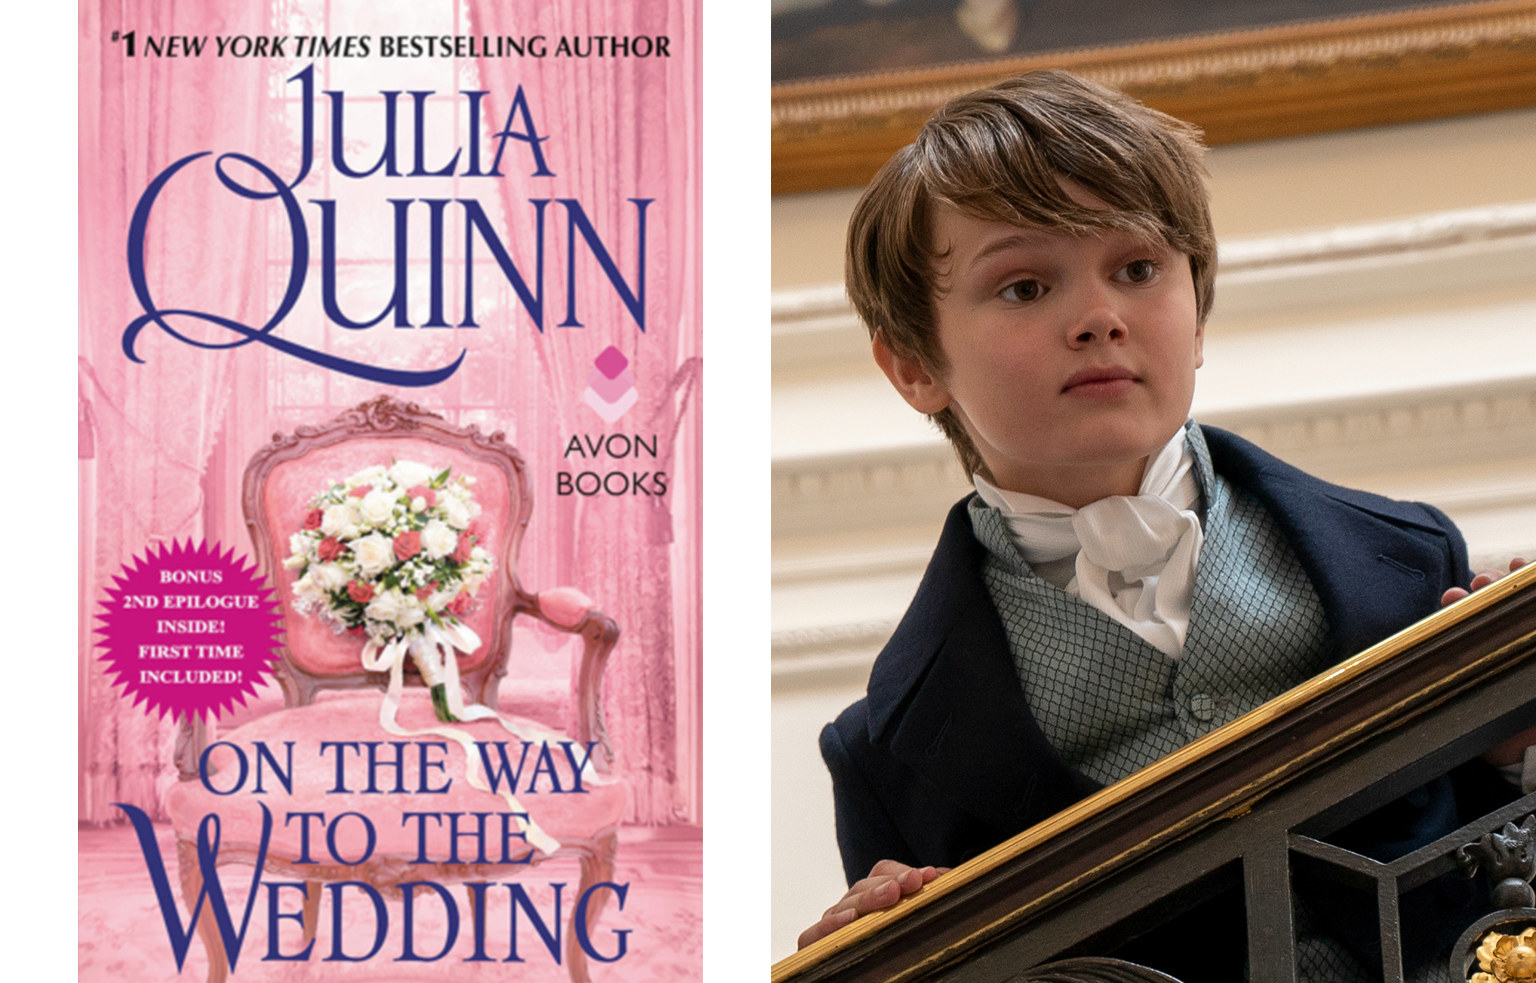 An ornate chair with a bouquet of flowers placed on it is featured on this book cover